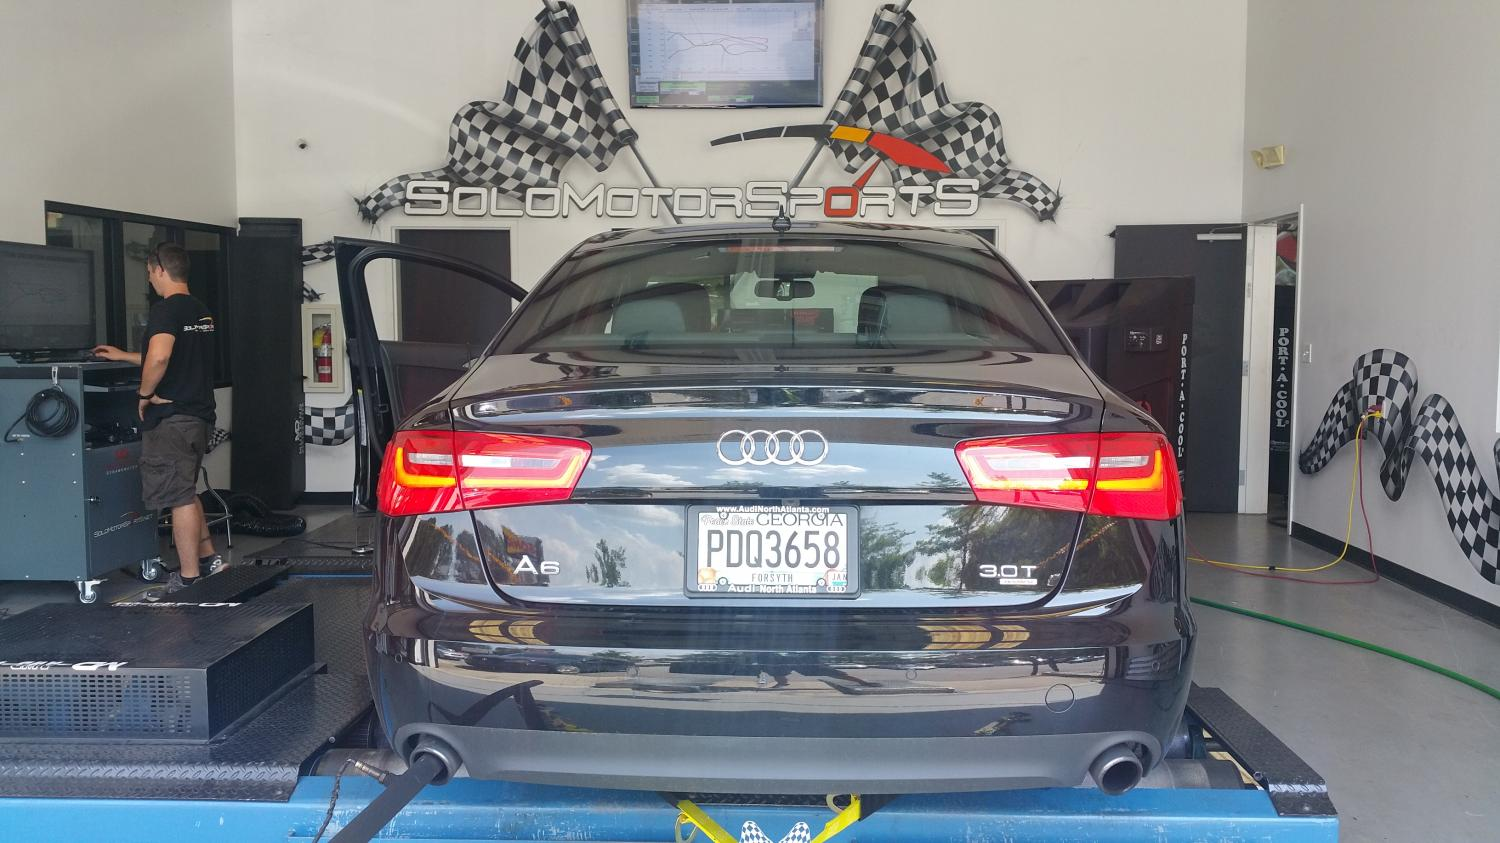 2013 A6 3.0T in for Tuning